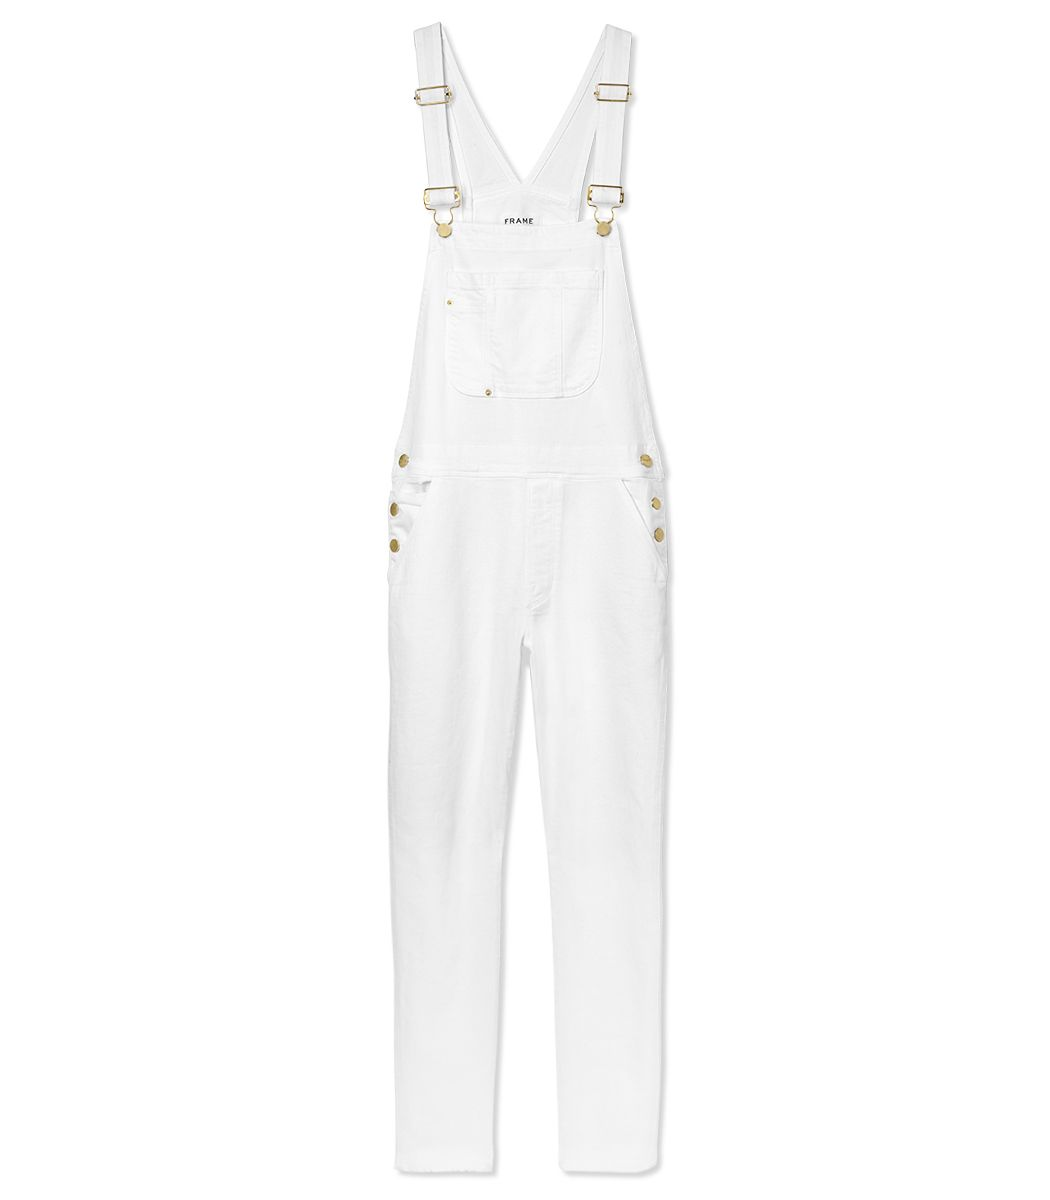 Frame Denim White Overall - Shop more ways to wear a crop top this summer: http://www.harpersbazaar.com/fashion/fashion-articles/how-to-wear-a-crop-top